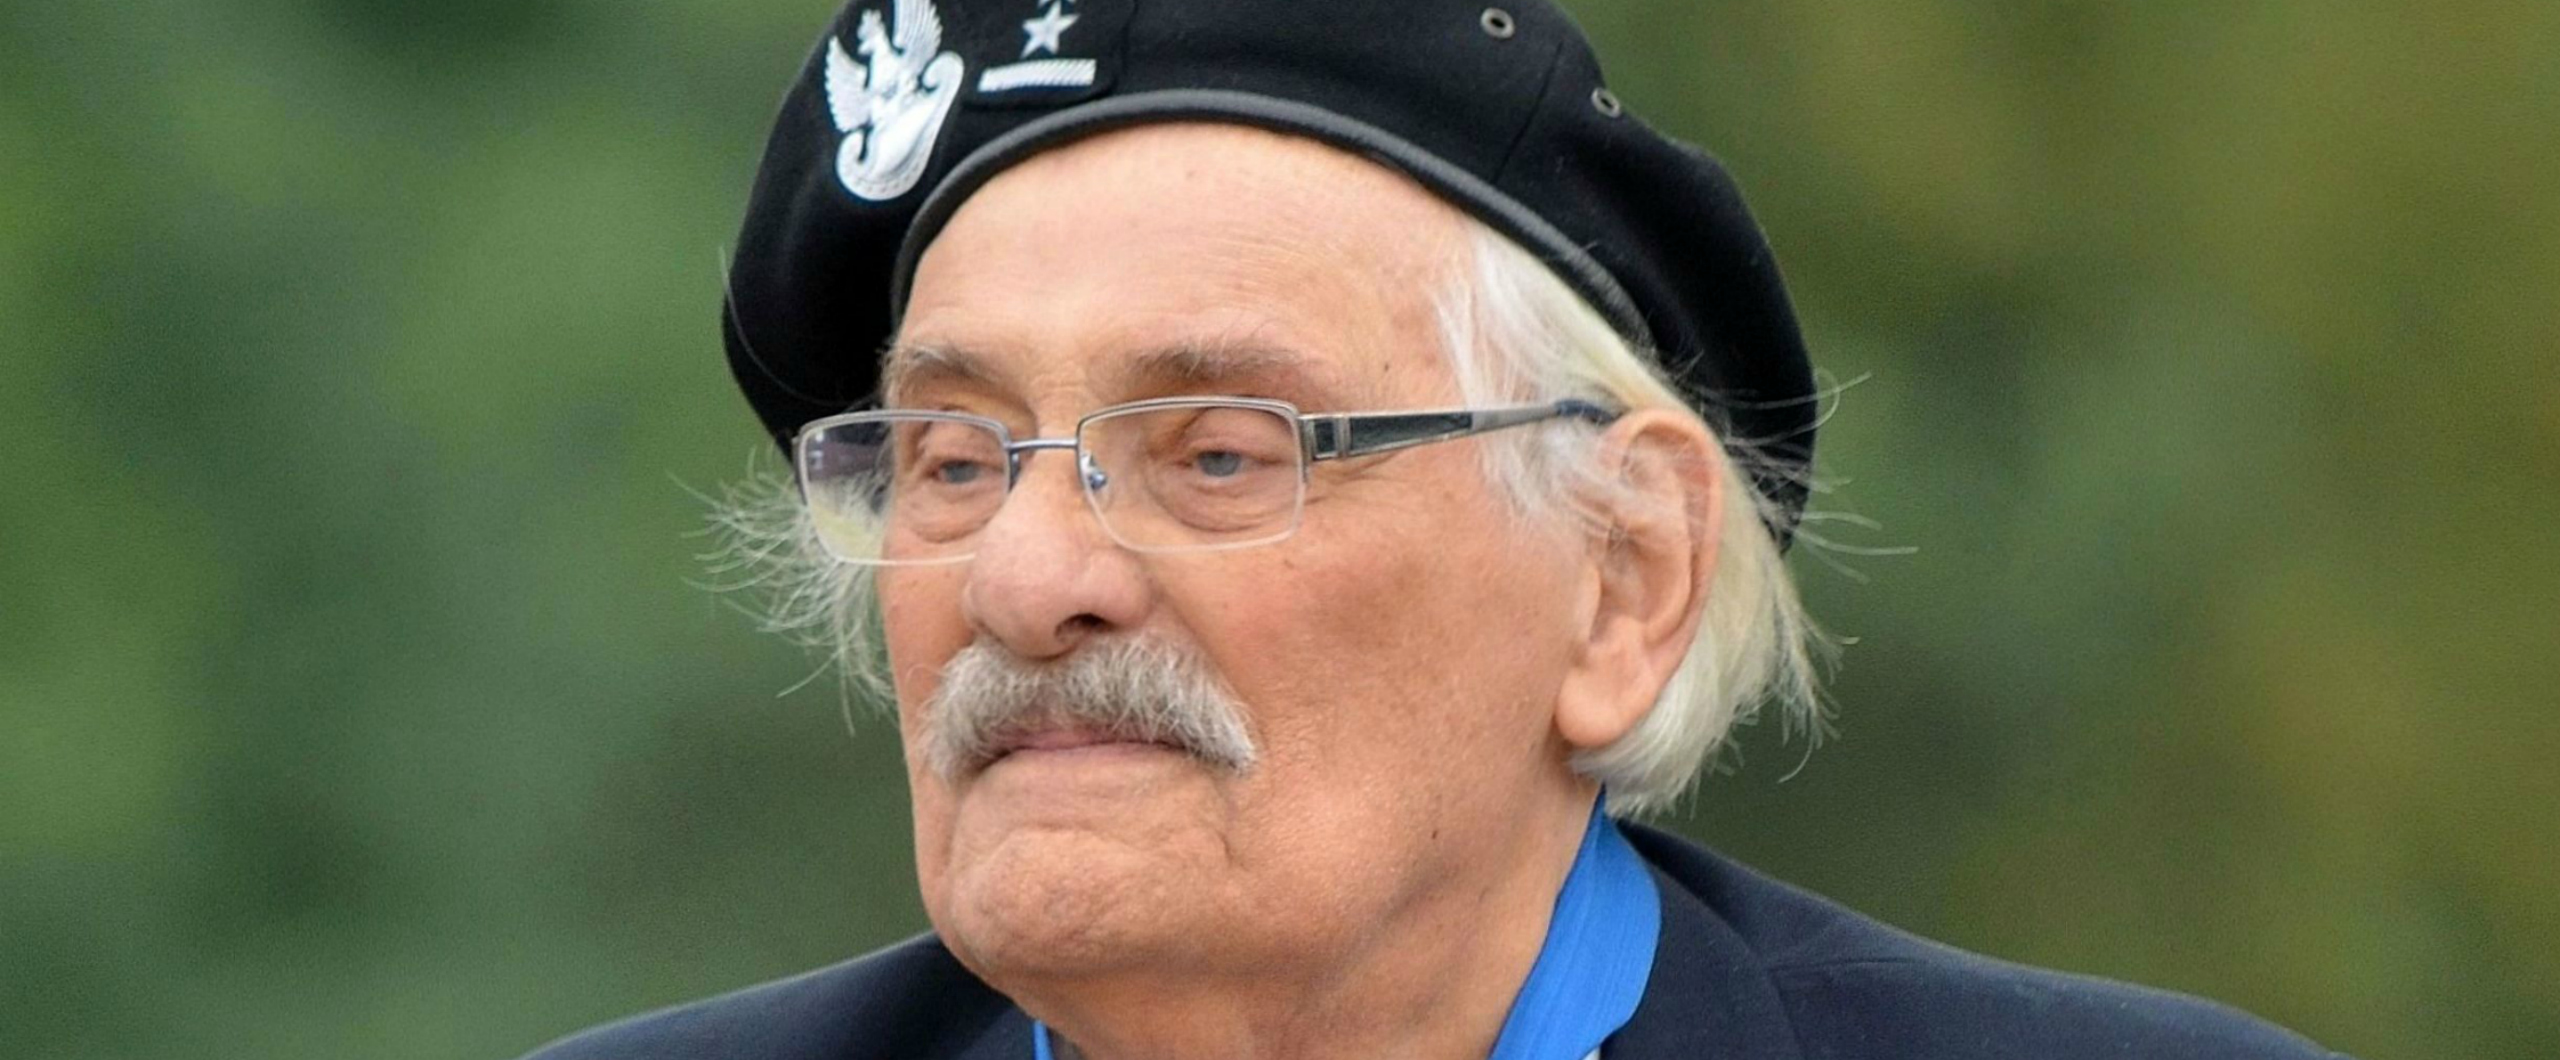 Remaining Treblinka Survivor Dies at 93